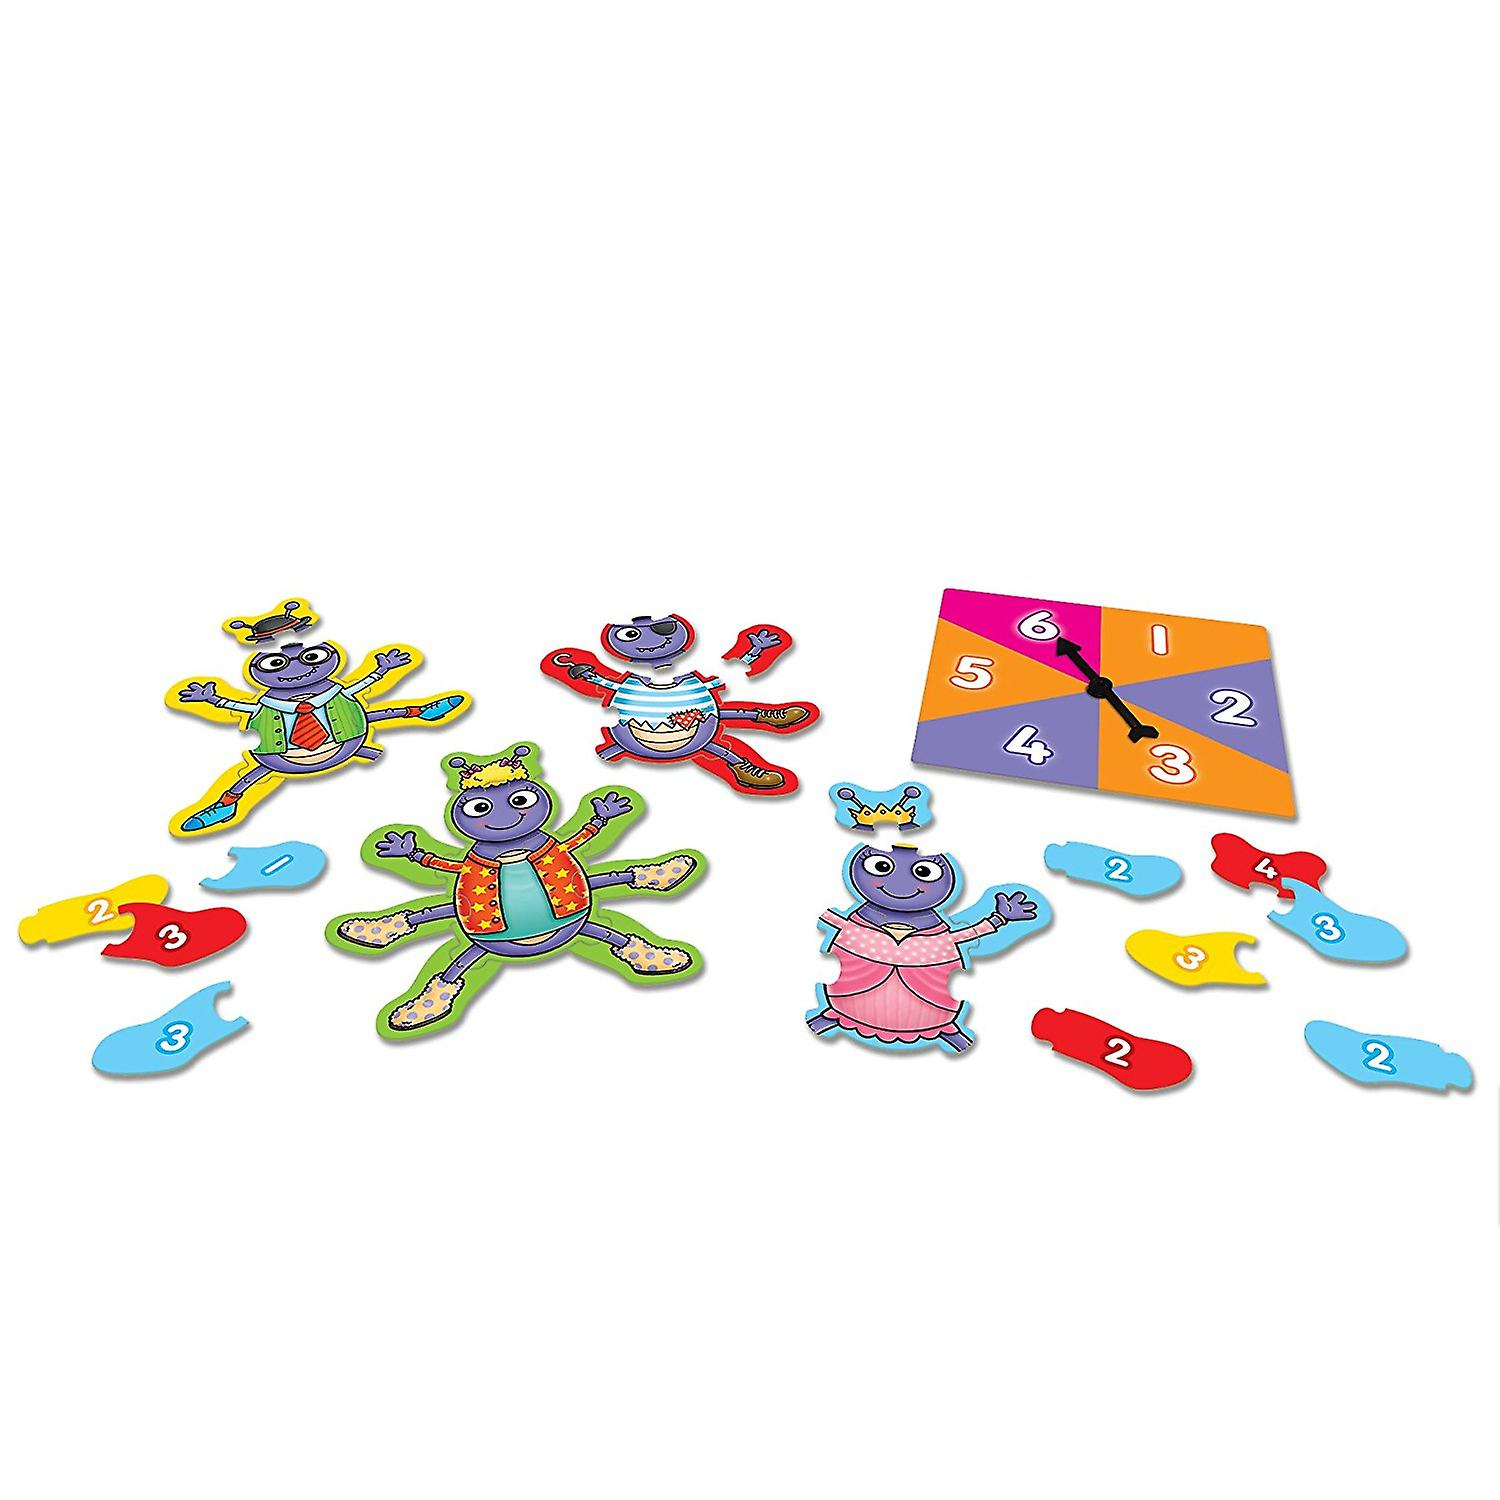 Orchard Toys 354